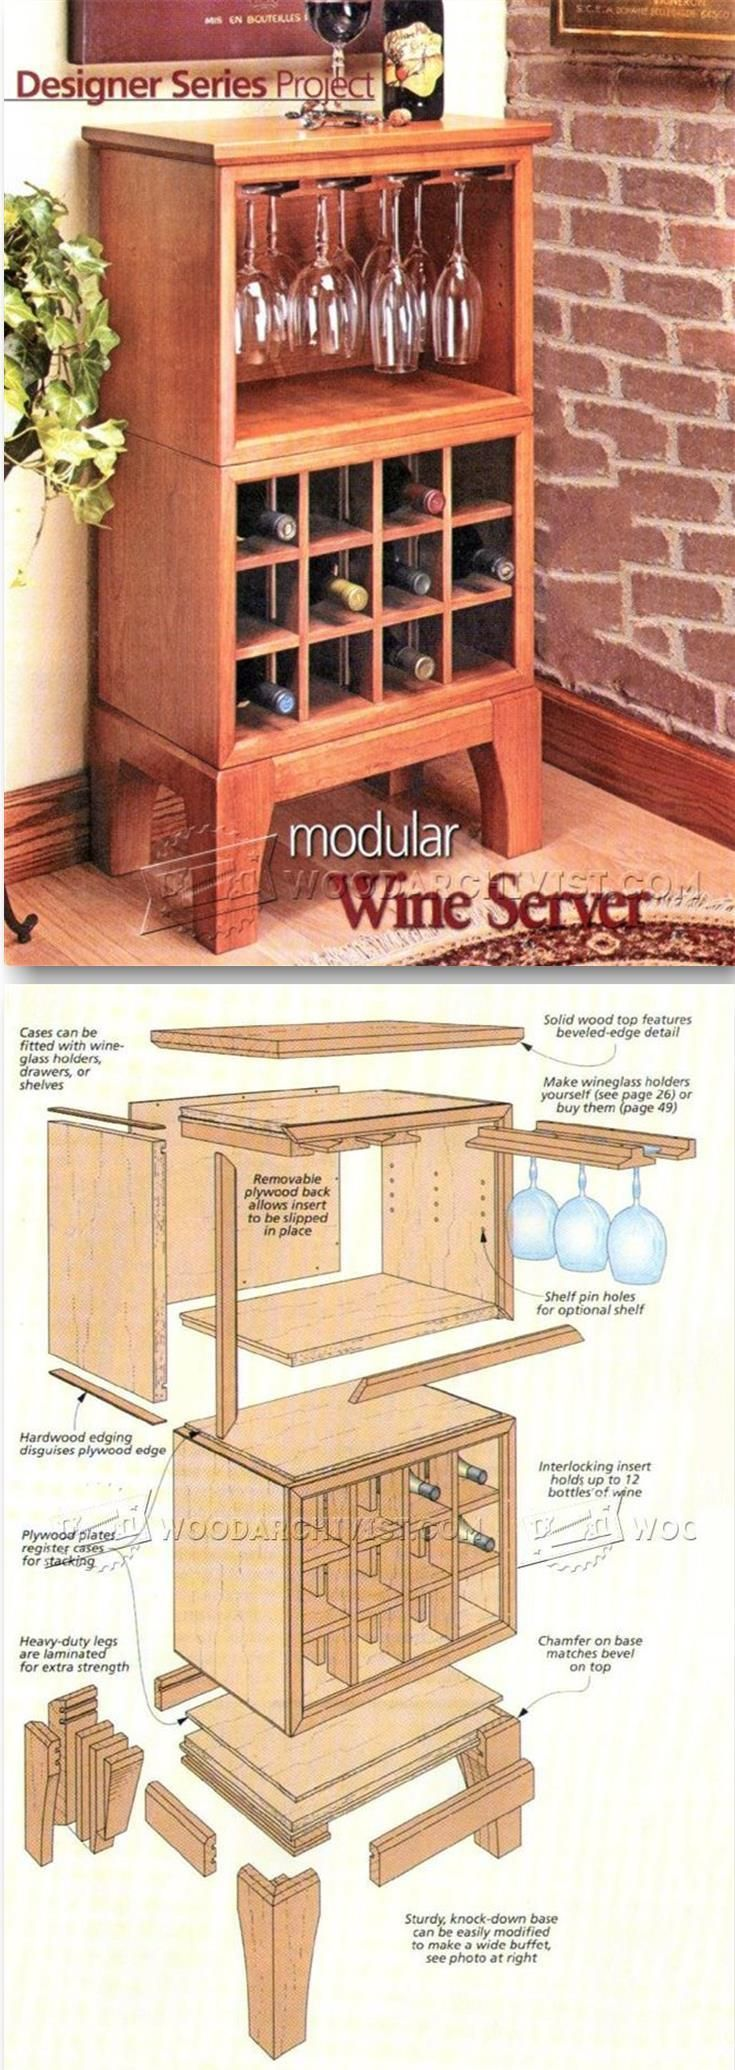 Wine Server Plans   Furniture Plans And Projects | Http://WoodArchivist.com